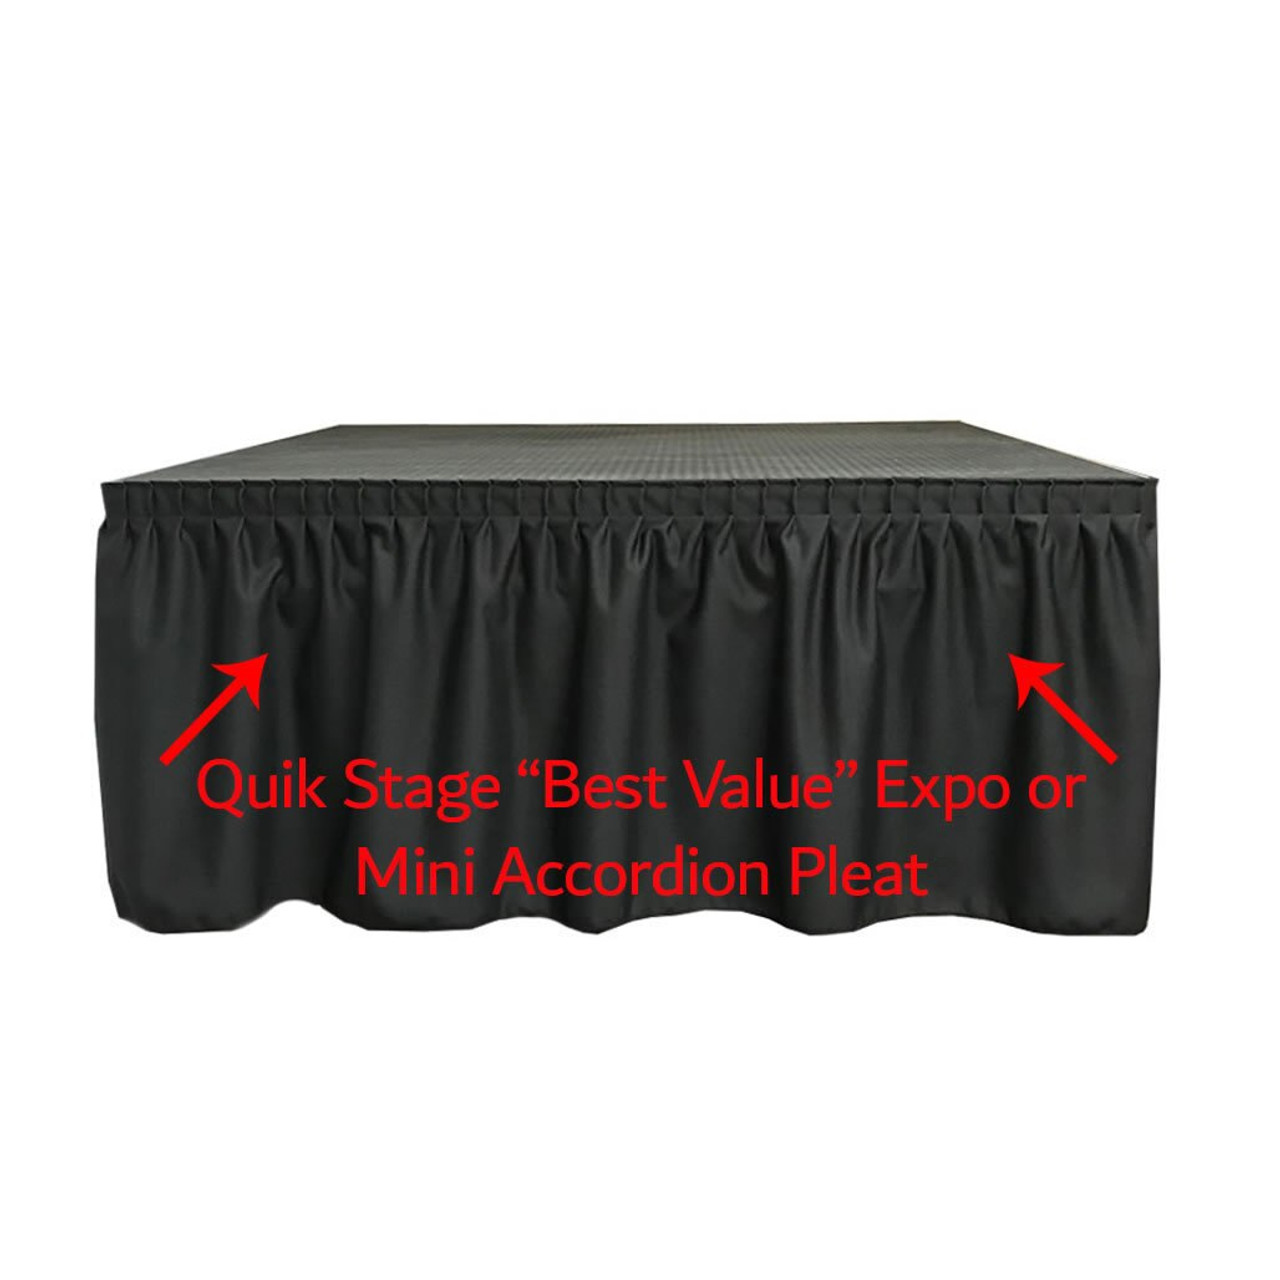 High Quality Quik Stage 4' x 8' High Portable Stage Package with Black Polyvinyl Non-Skid Surface. Additional Heights and Surfaces Available - Best Value Expo Pleat Stage Skirting